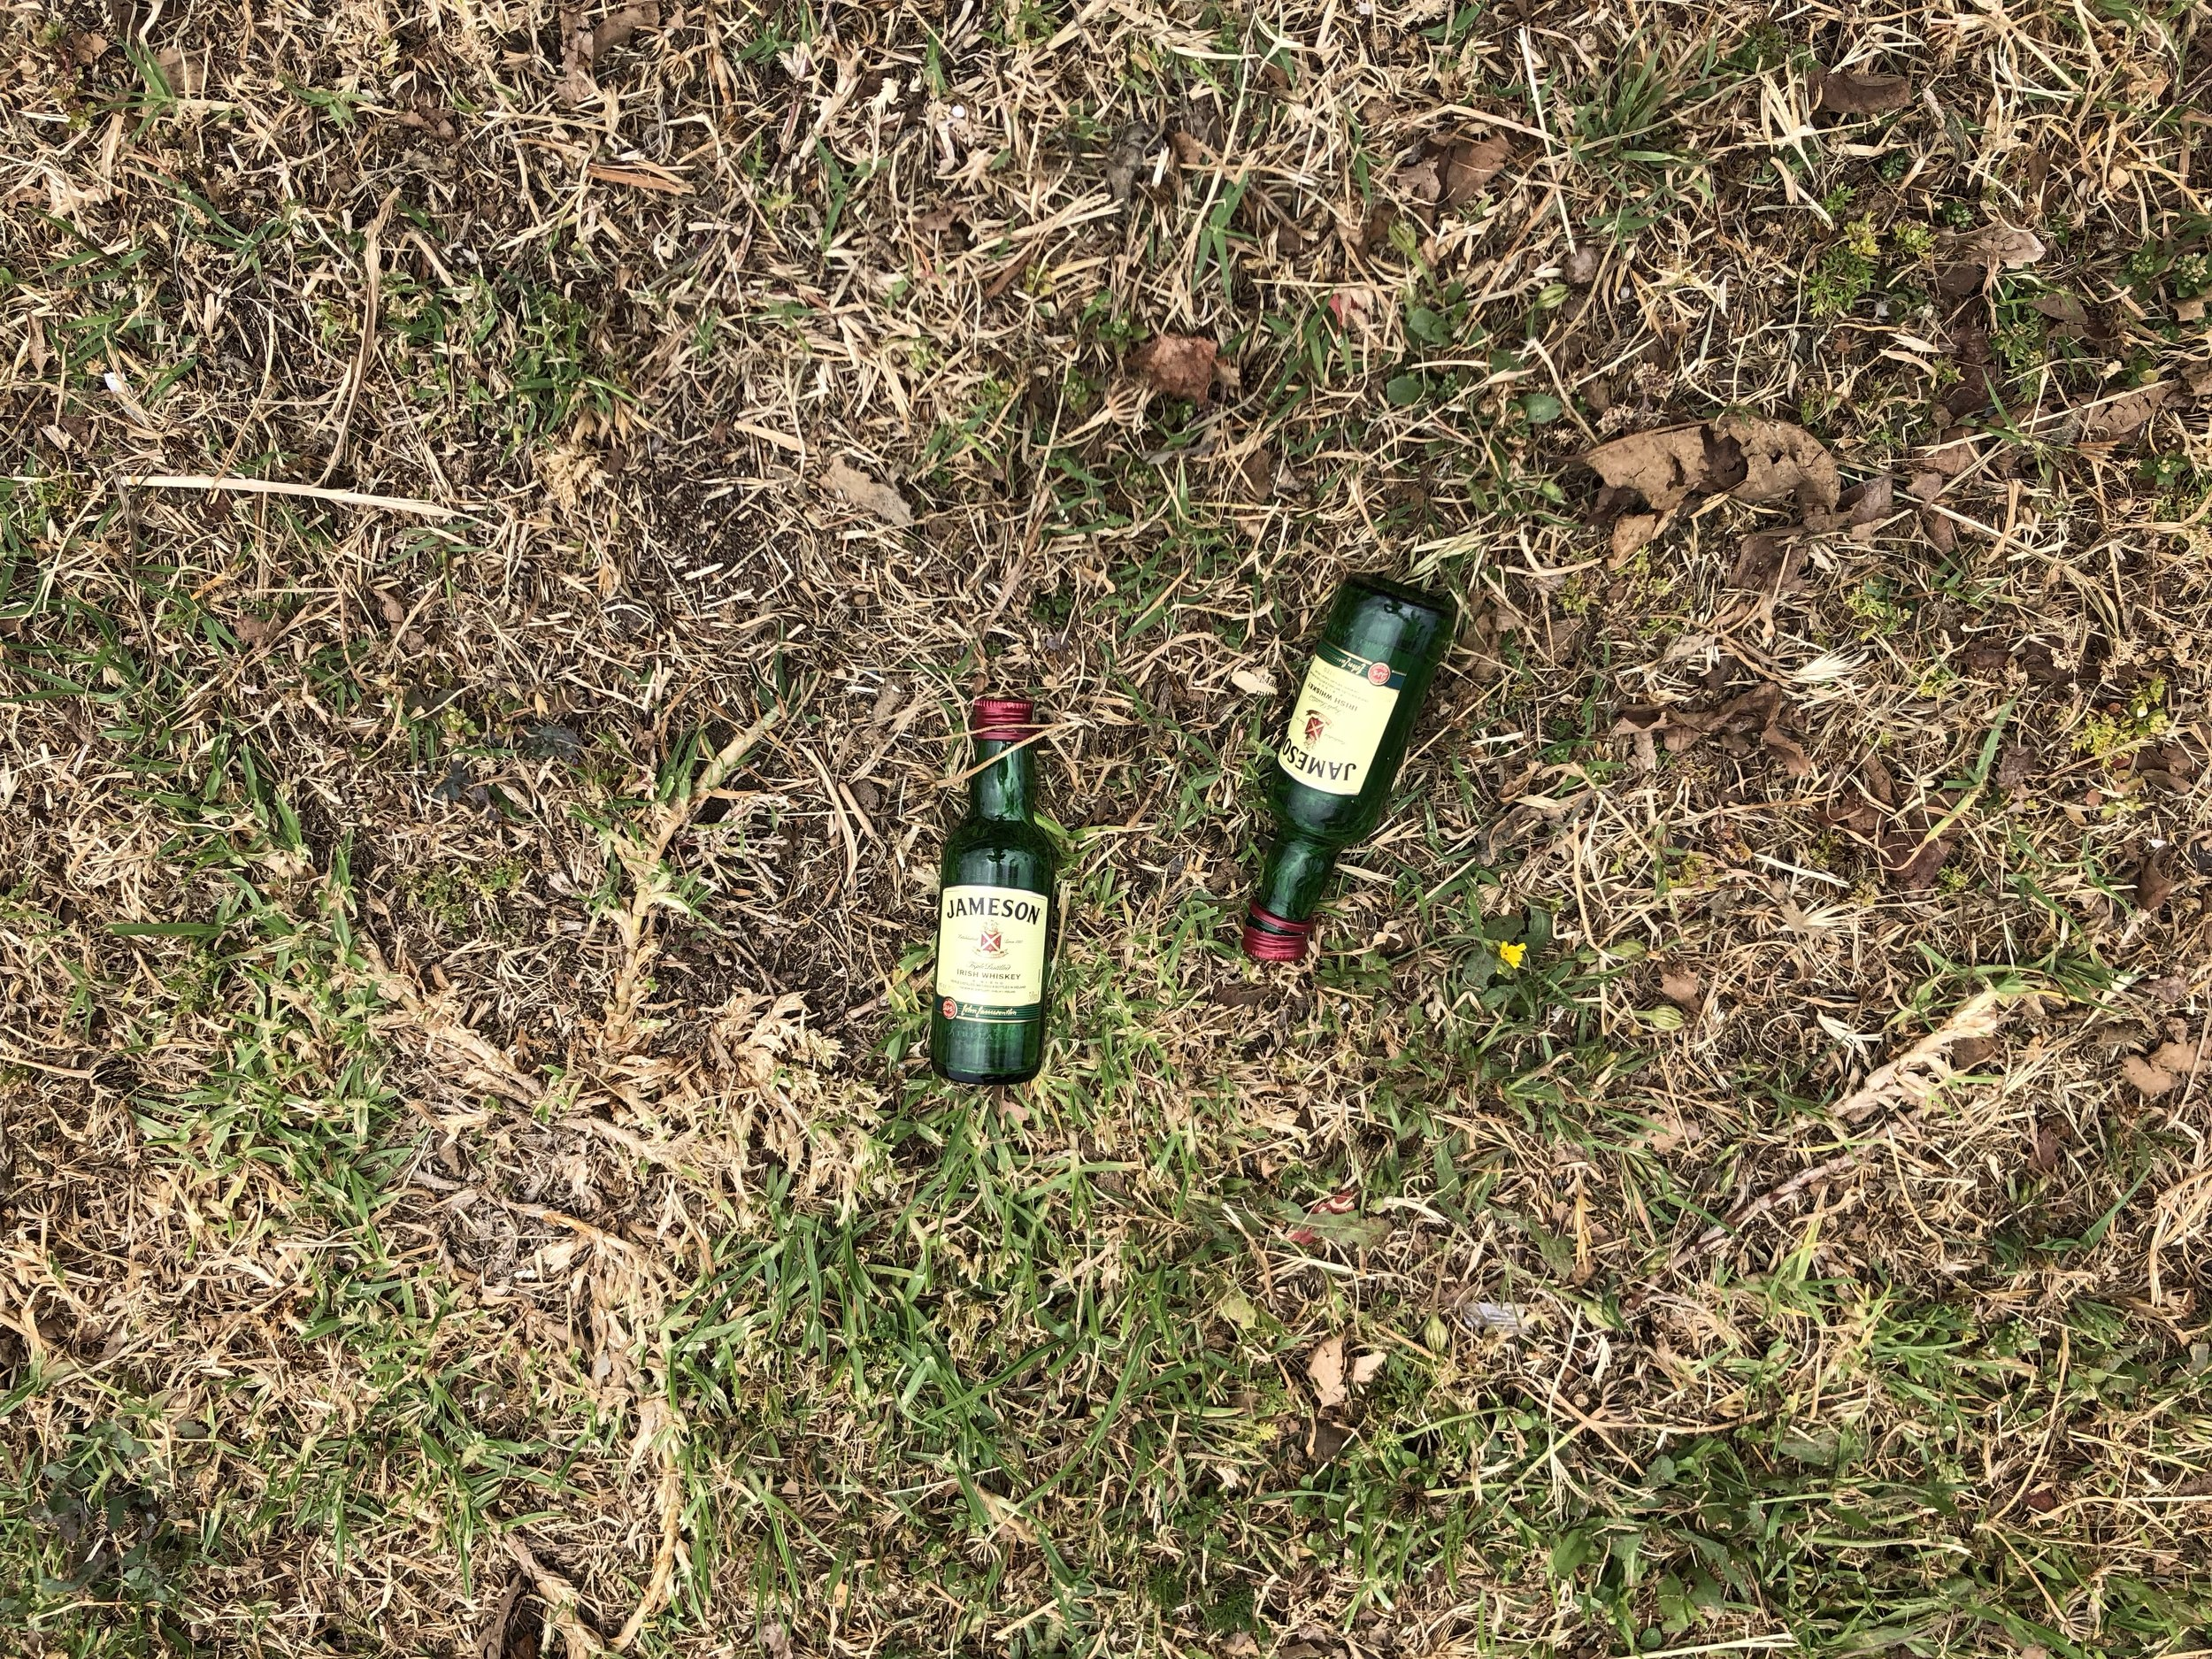 point-loman-trash-cleanup-liquor-bottles-may-7-2019.jpg